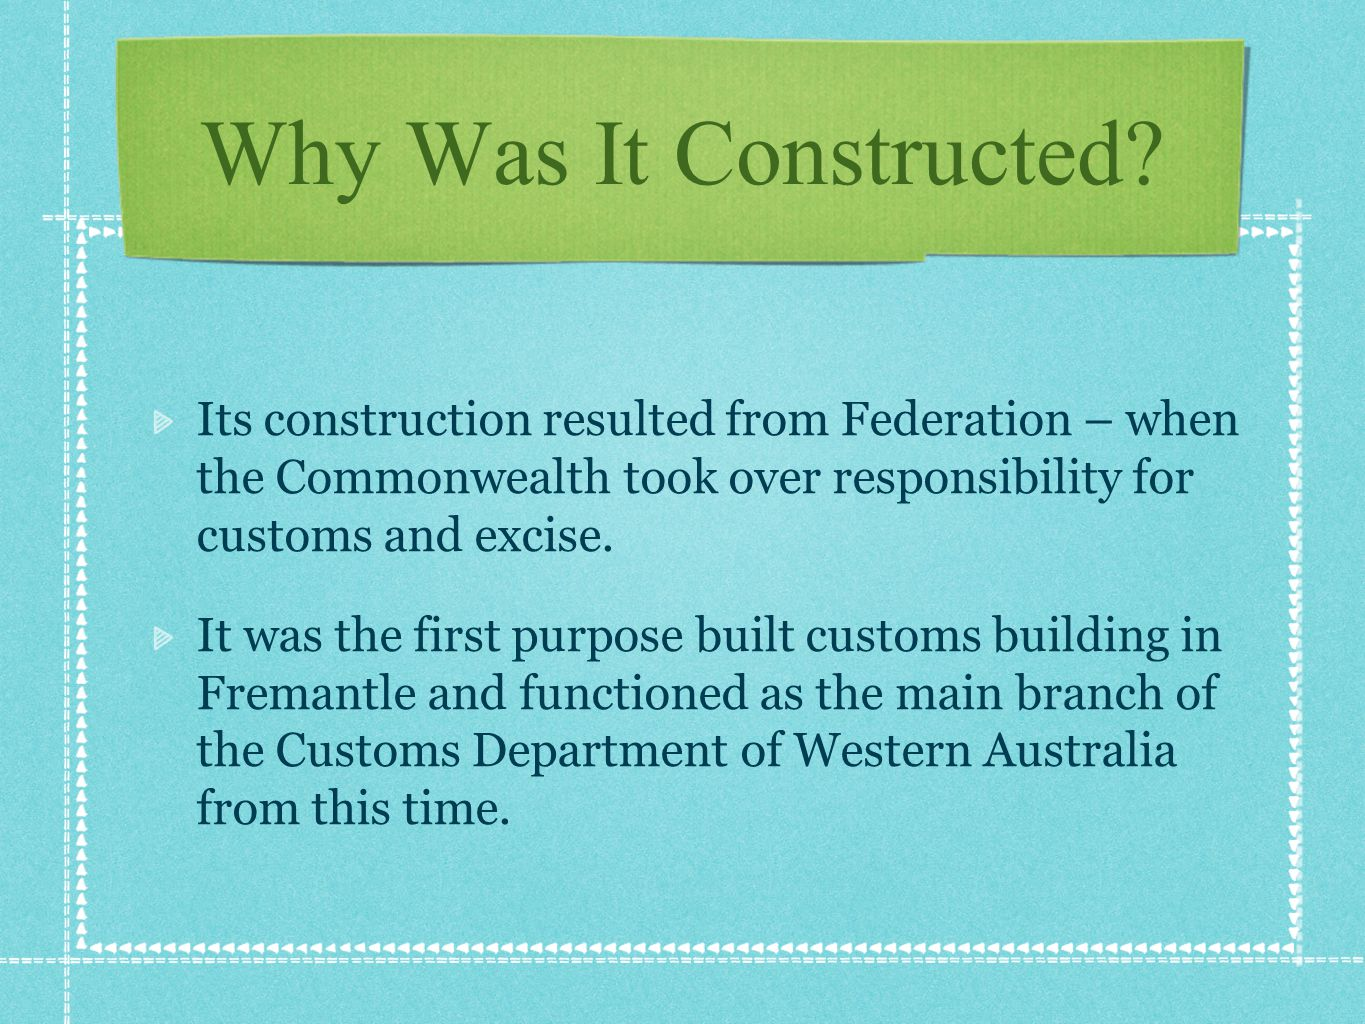 Why Was It Constructed.